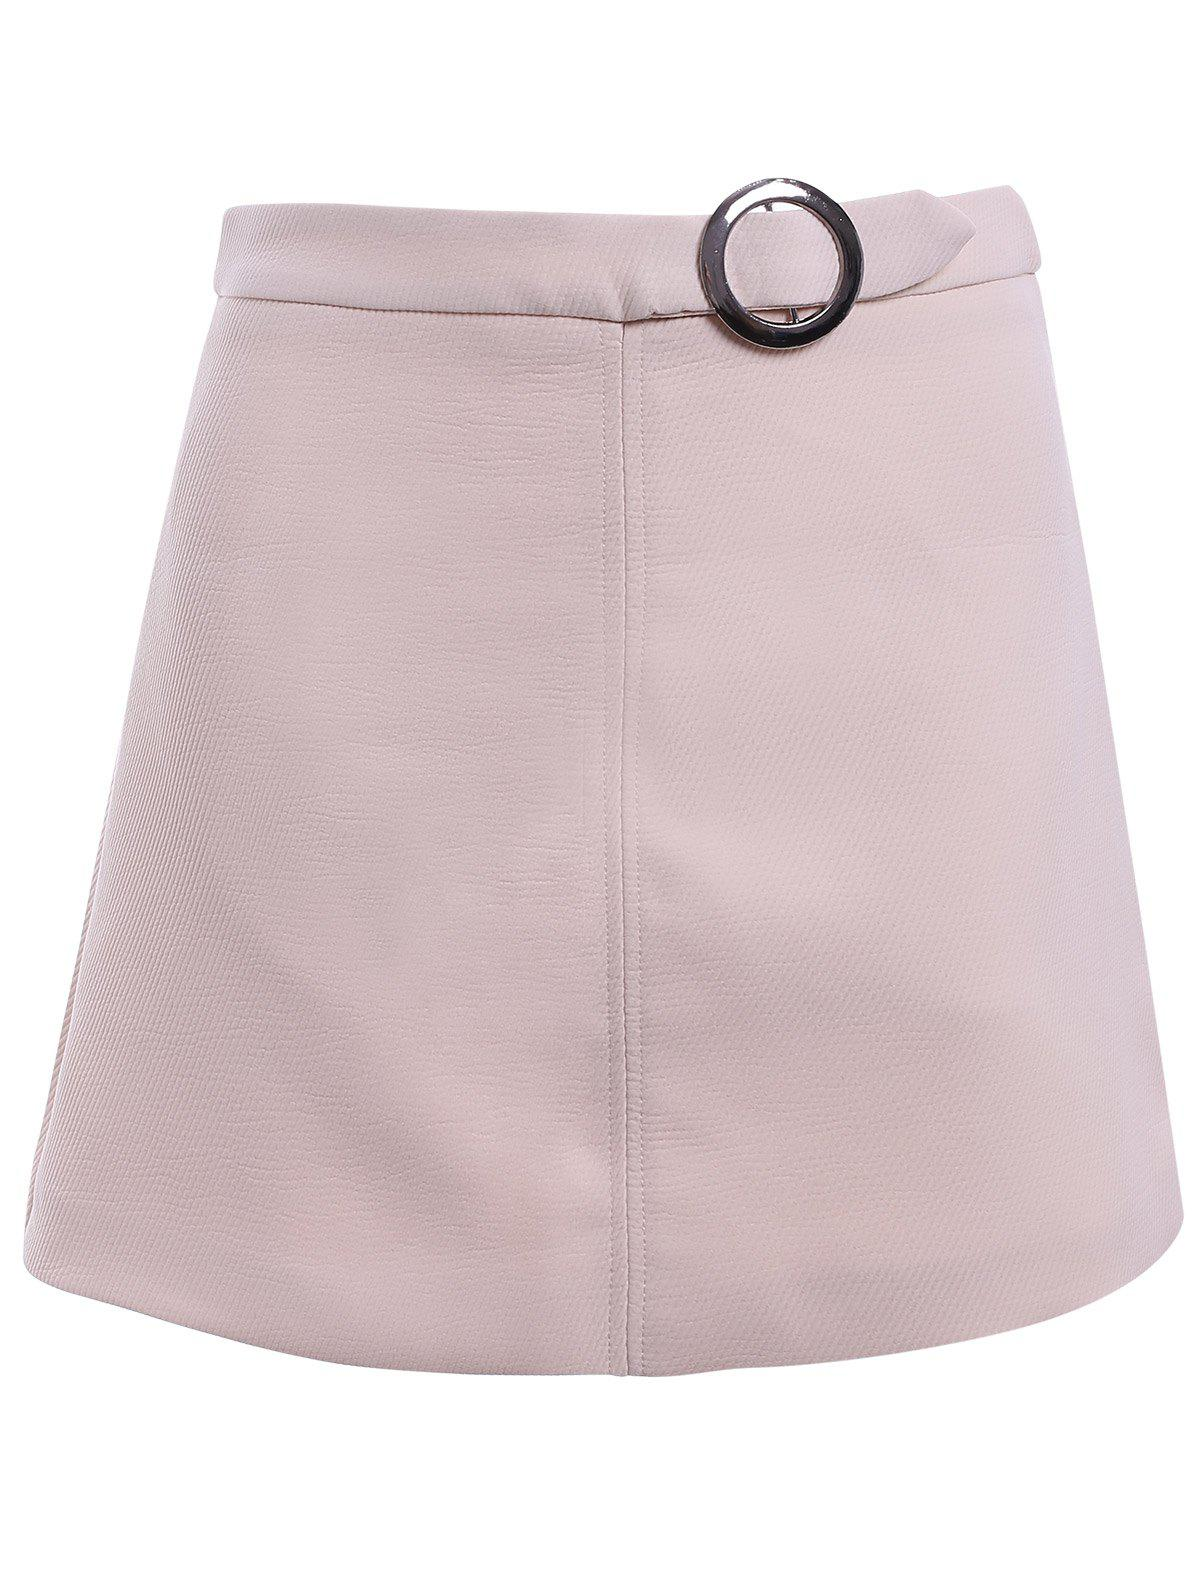 Simple Design Women's A-line Round button Midi Skirt